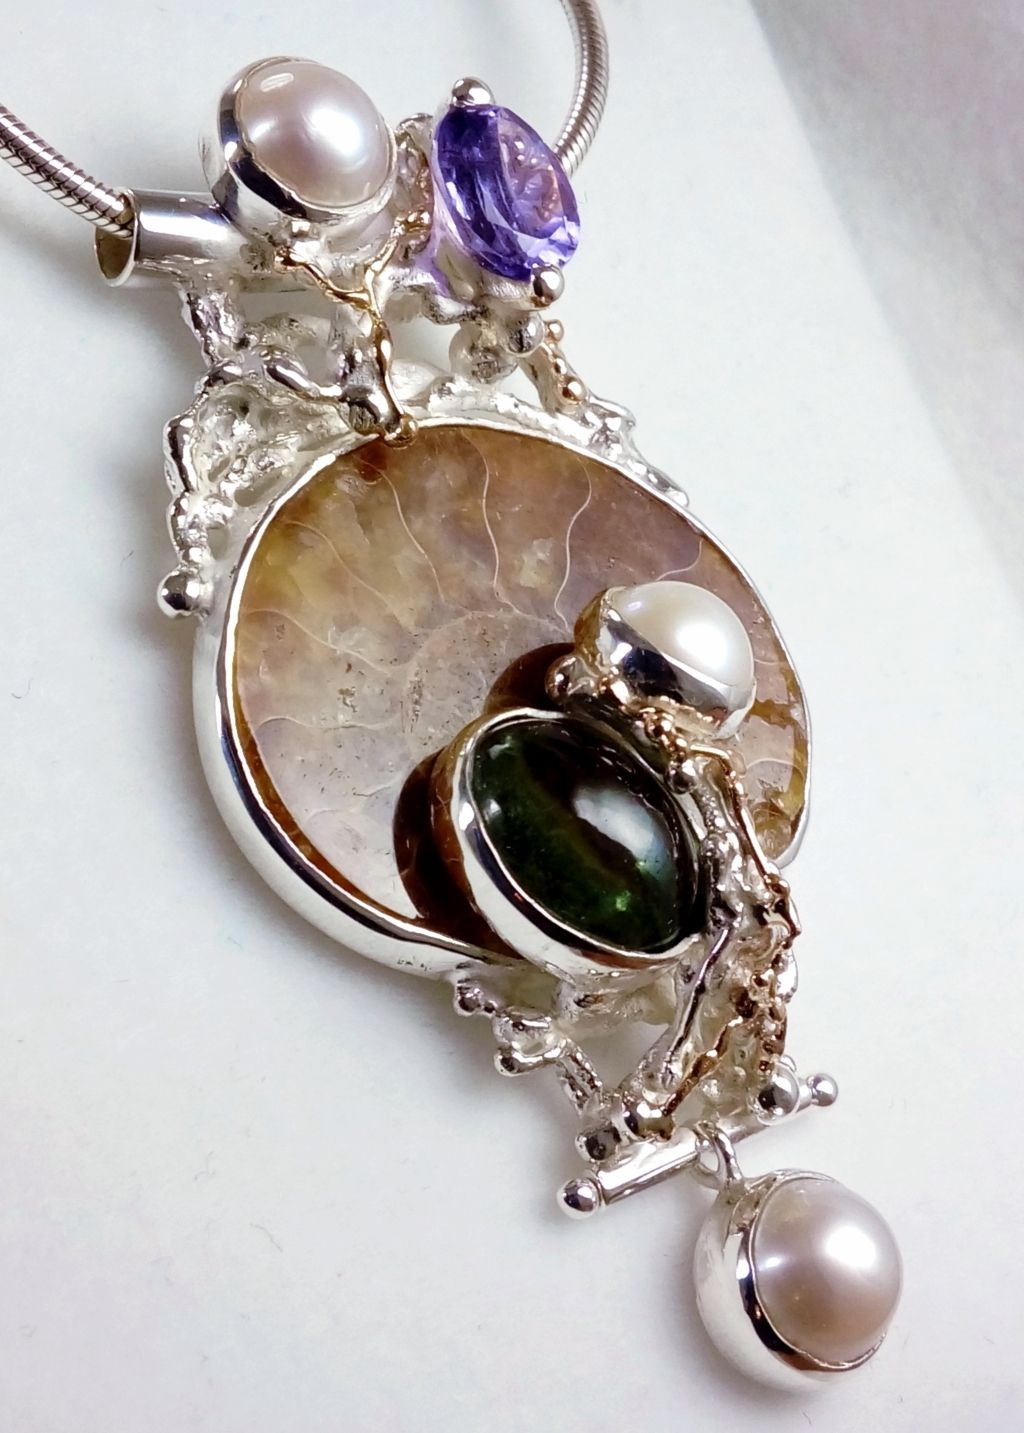 gregory pyra piro pendant 4921, fine craft gallery jewellery for sale, art and craft gallery pendant for sale, sterling silver and 14 karat gold pendant, pendant with faceted amethyst and fluorite, pendant with amethyst and ammonite, pendant with ammonite and fluorite, one of a kind handcrafted pendant, original handcrafted jewellery